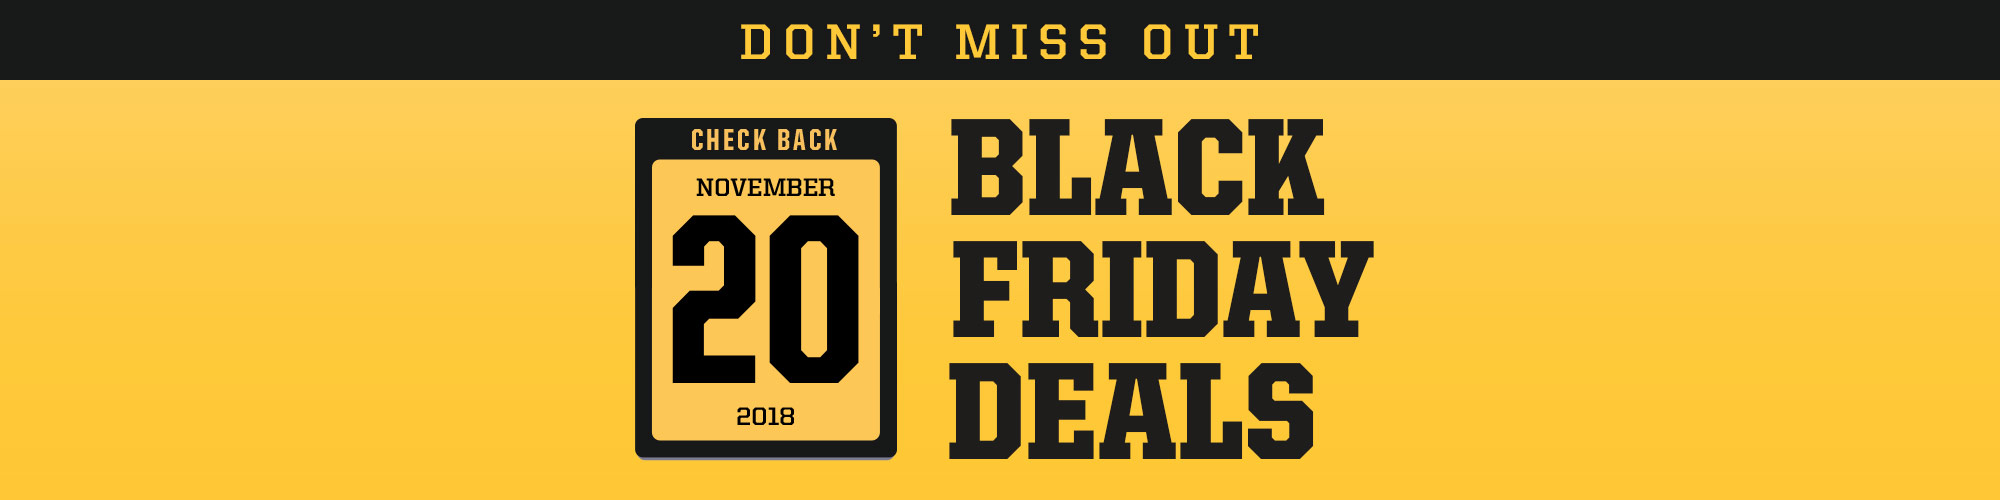 Check Back November 20, 2018 for more Black Friday Deals.